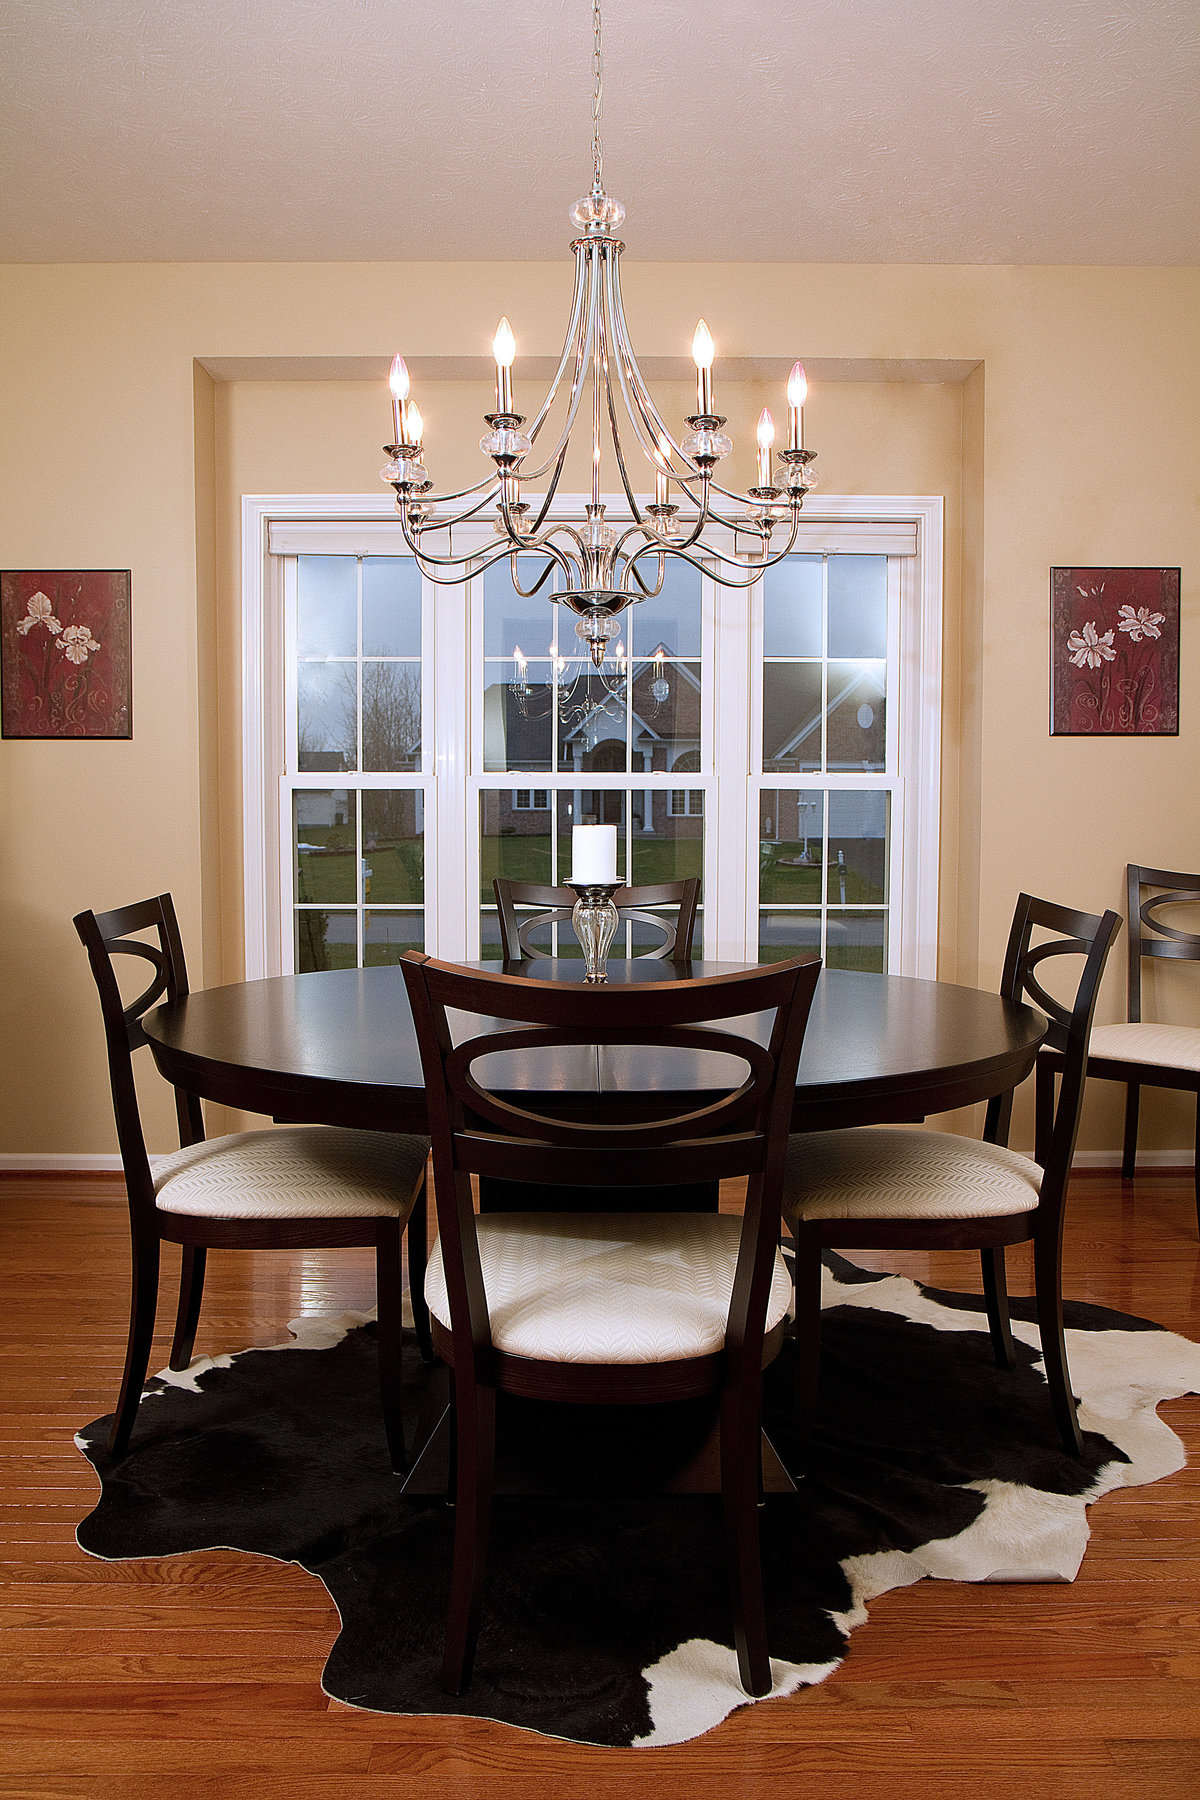 Real Estate Formal Dining Room